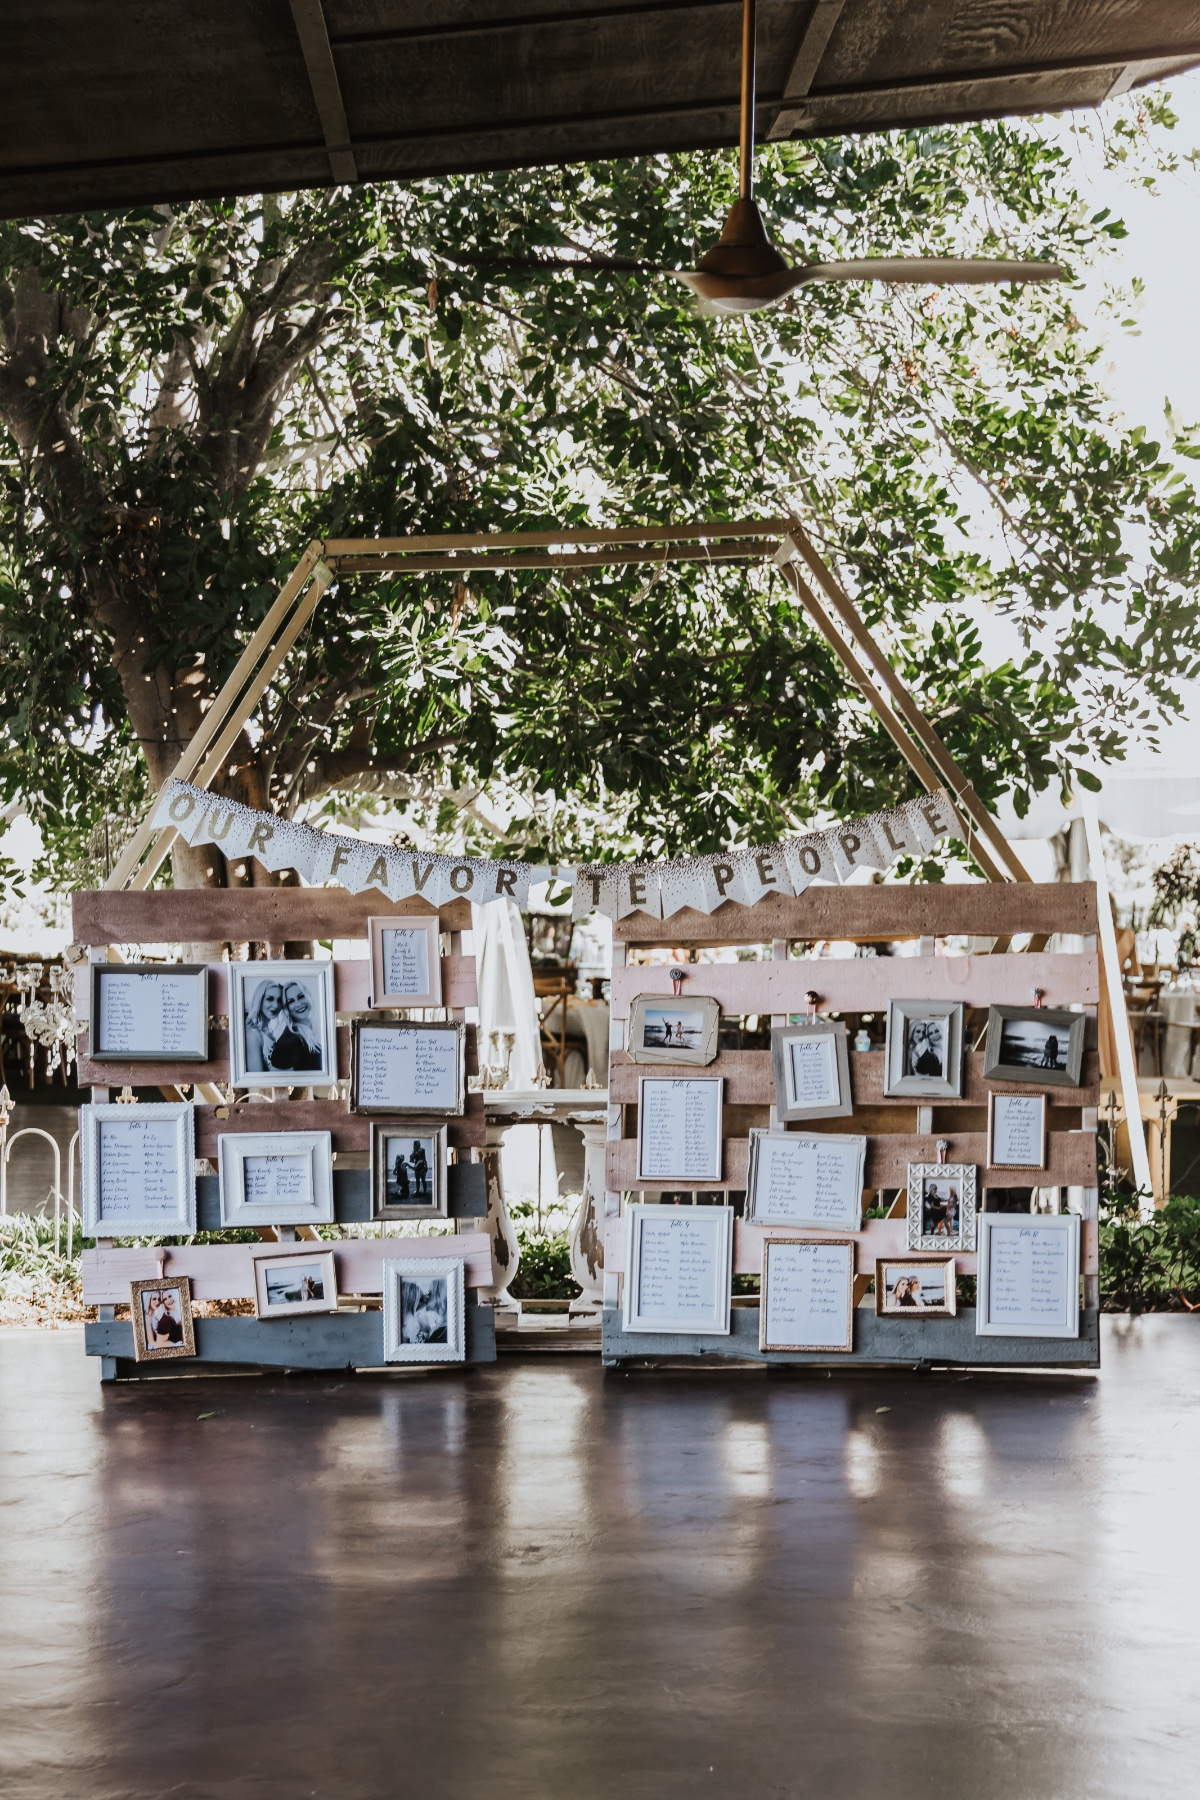 Our favorite people memory wall at wedding